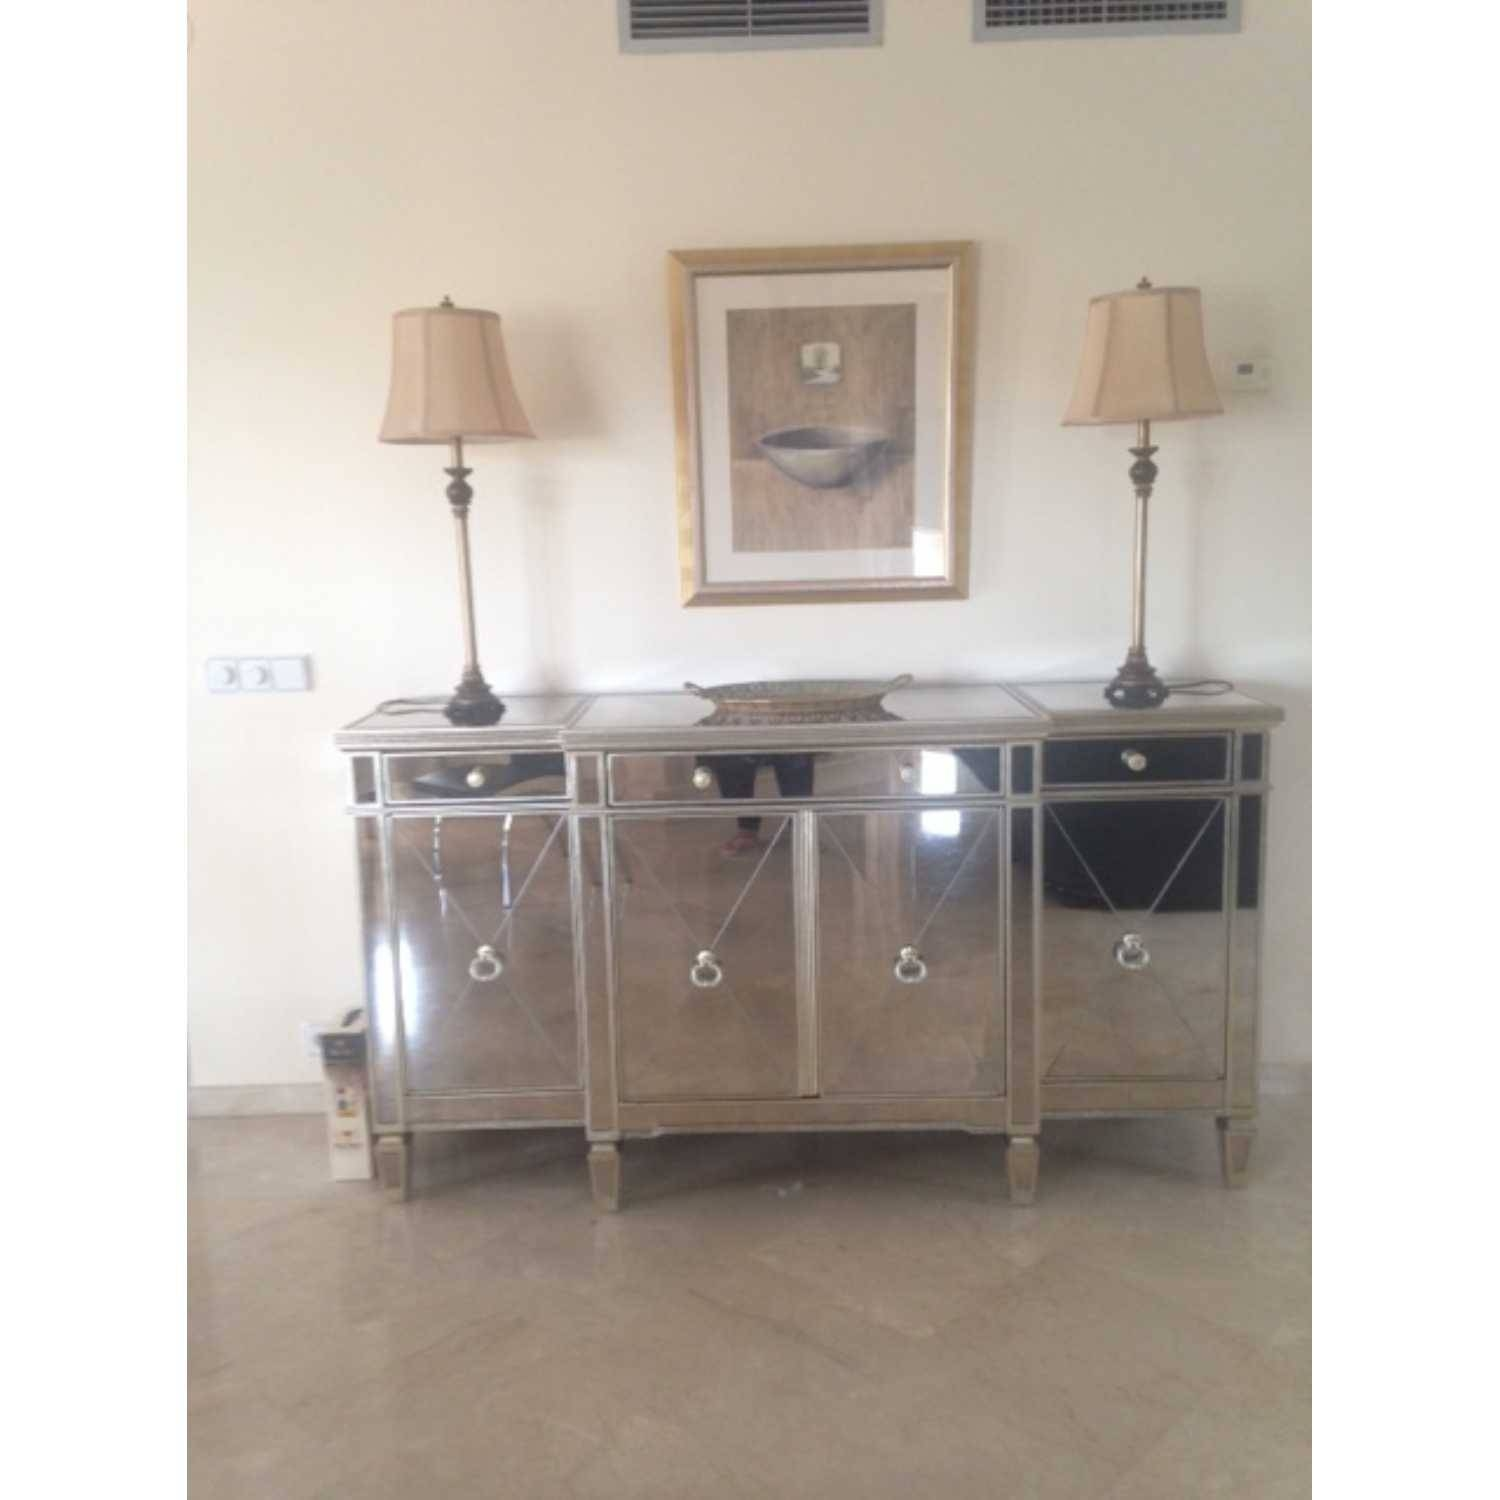 Large Antique Seville Venetian Mirrored Glass Sideboard 4 Door Pertaining To Small Mirrored Sideboards (View 11 of 30)